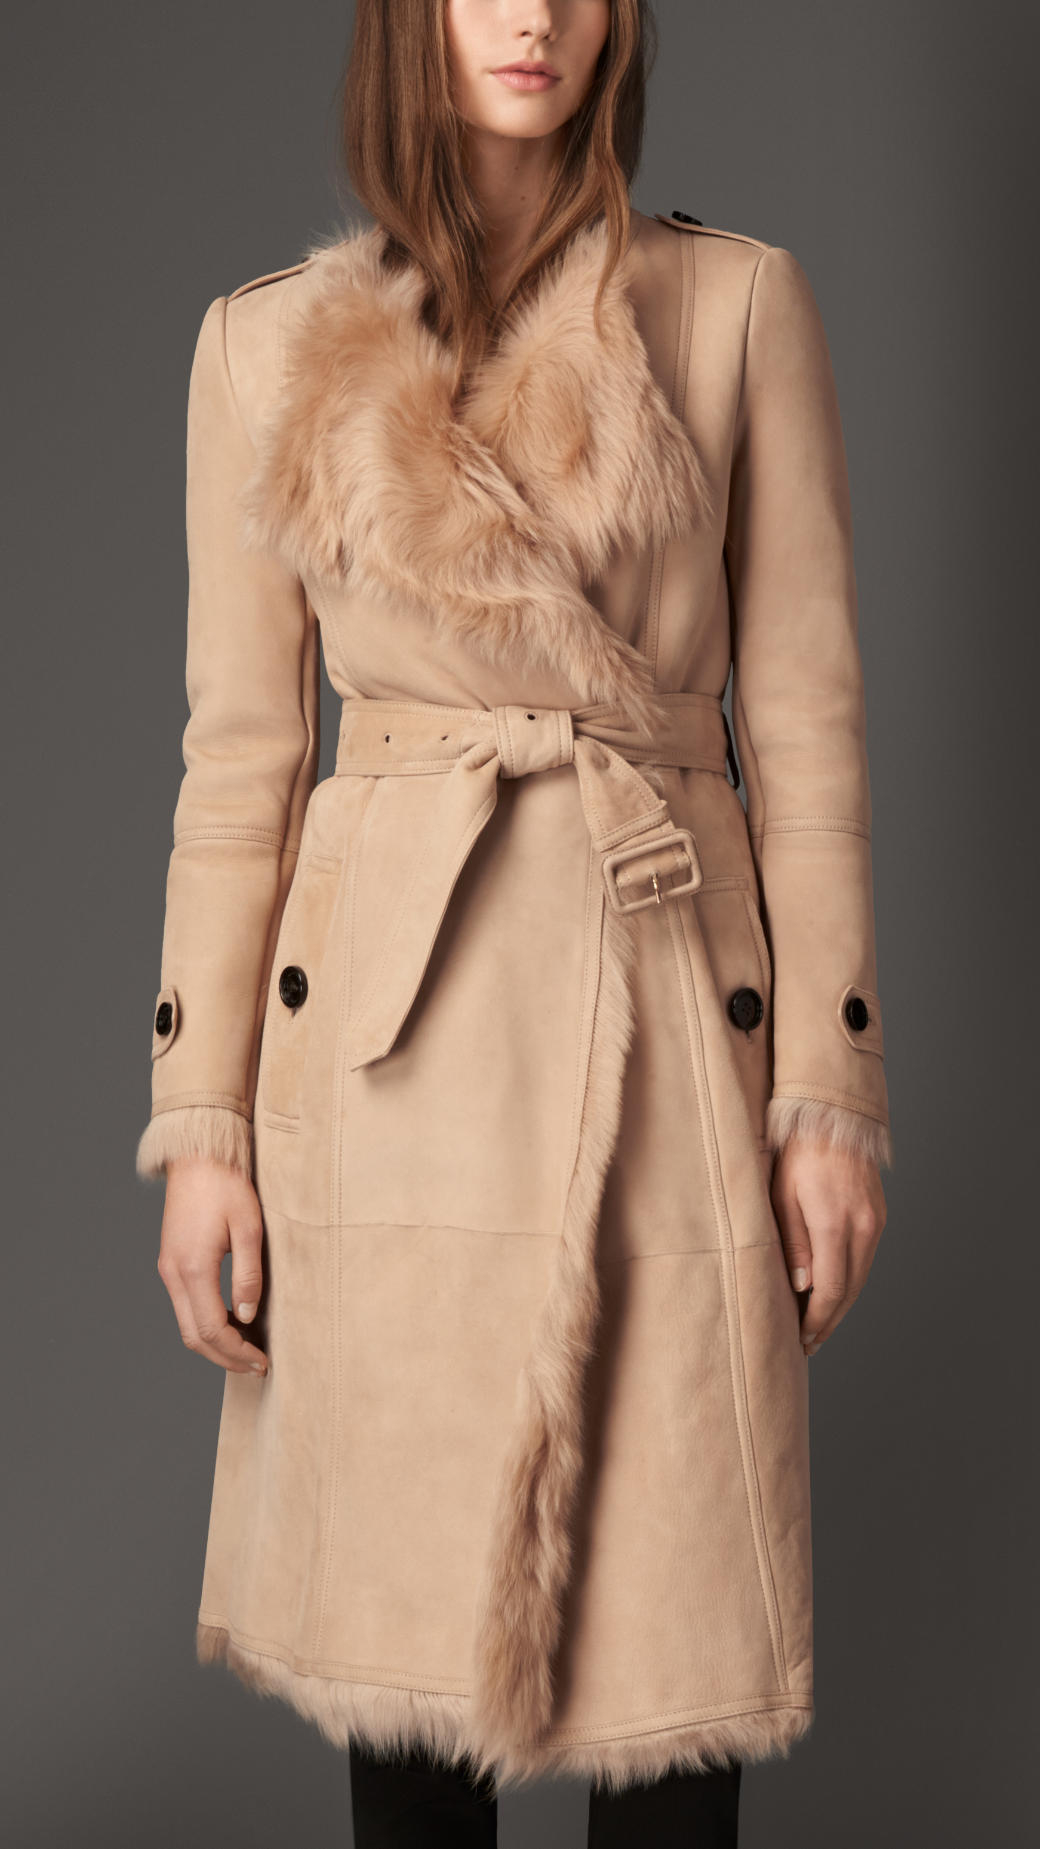 Burberry Shearling Trench Coat in Natural | Lyst